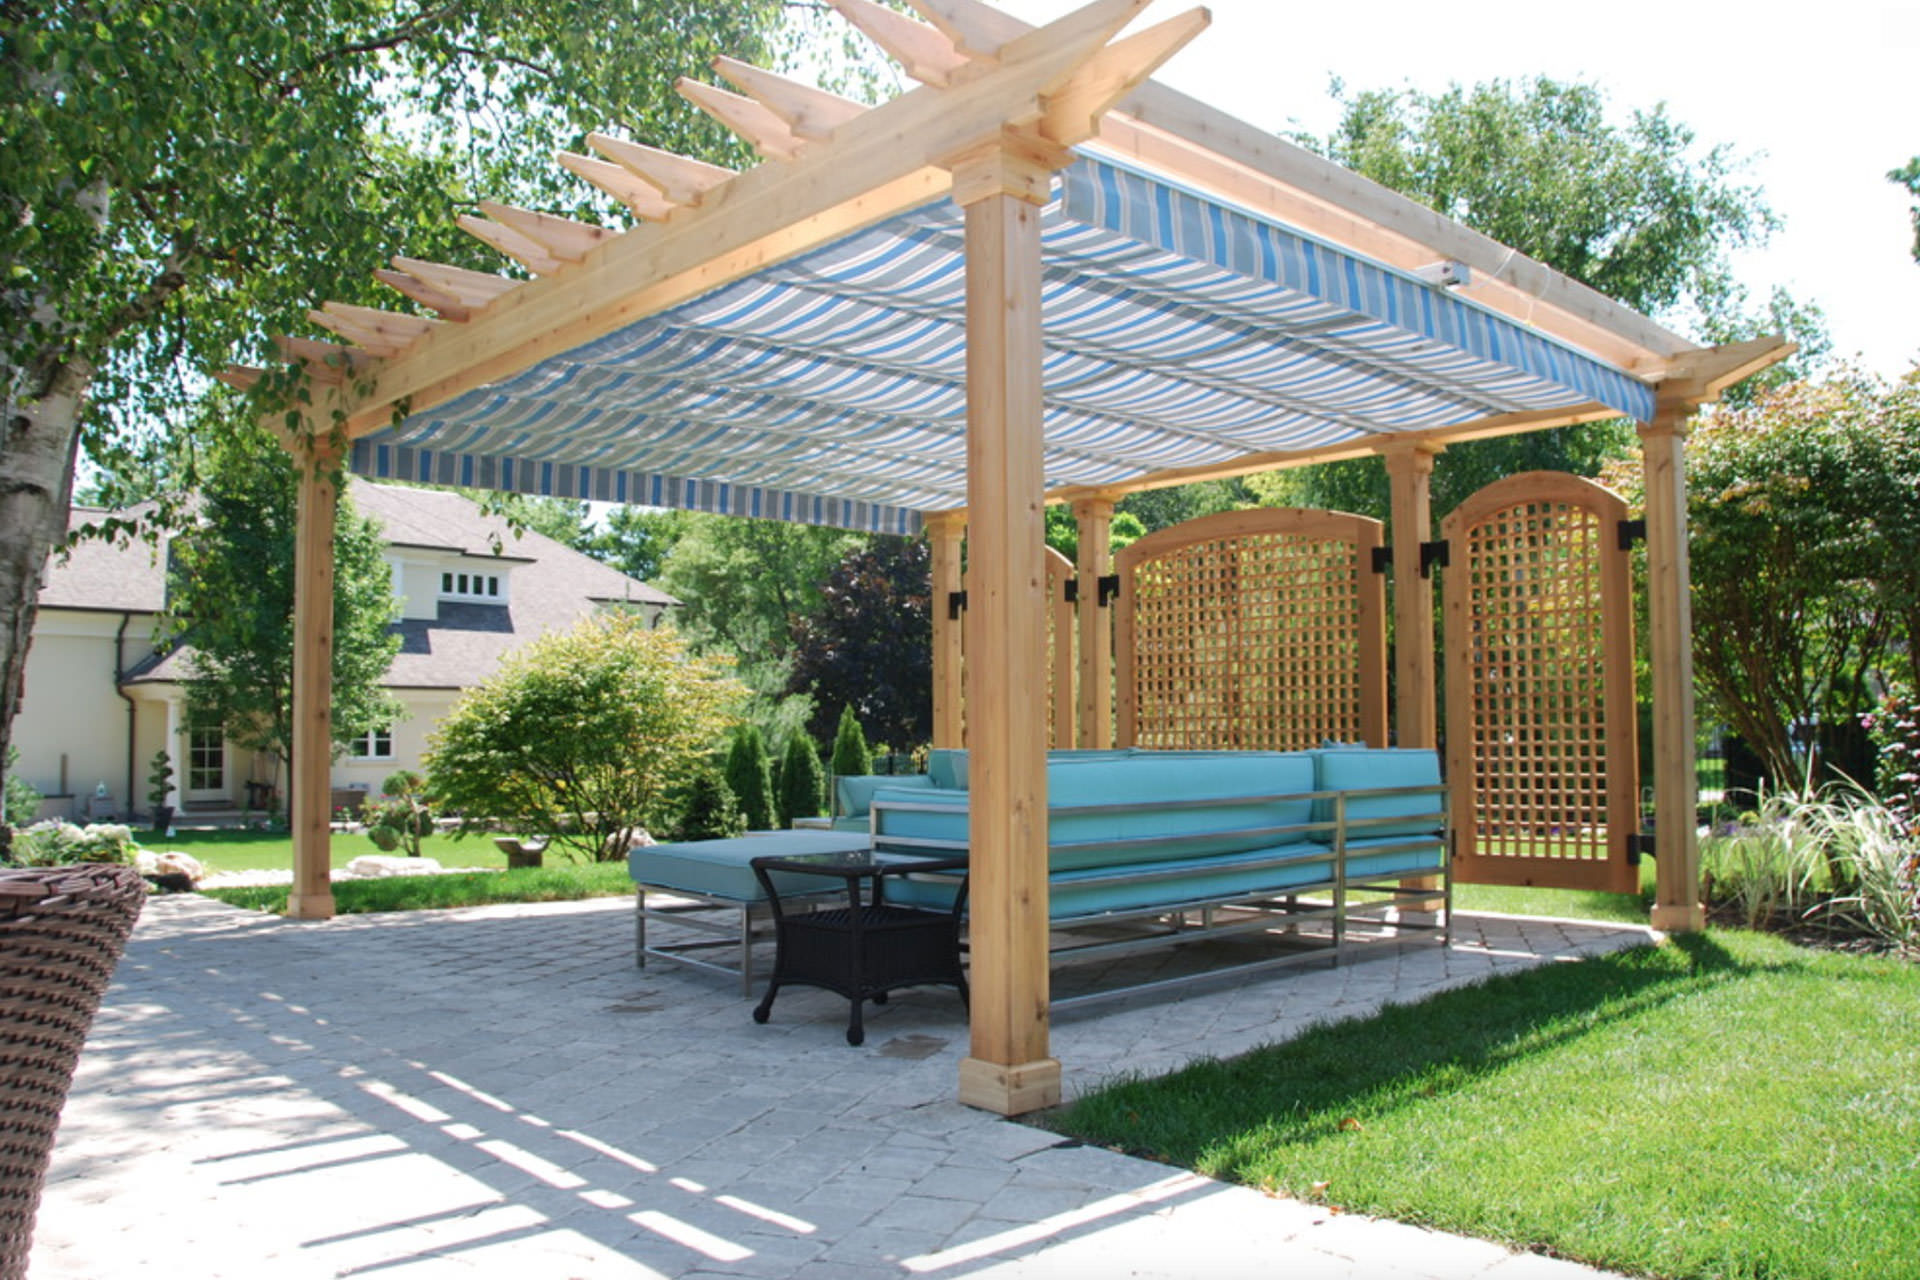 & Retractable Canopy or Awning: Whatu0027s the Difference?